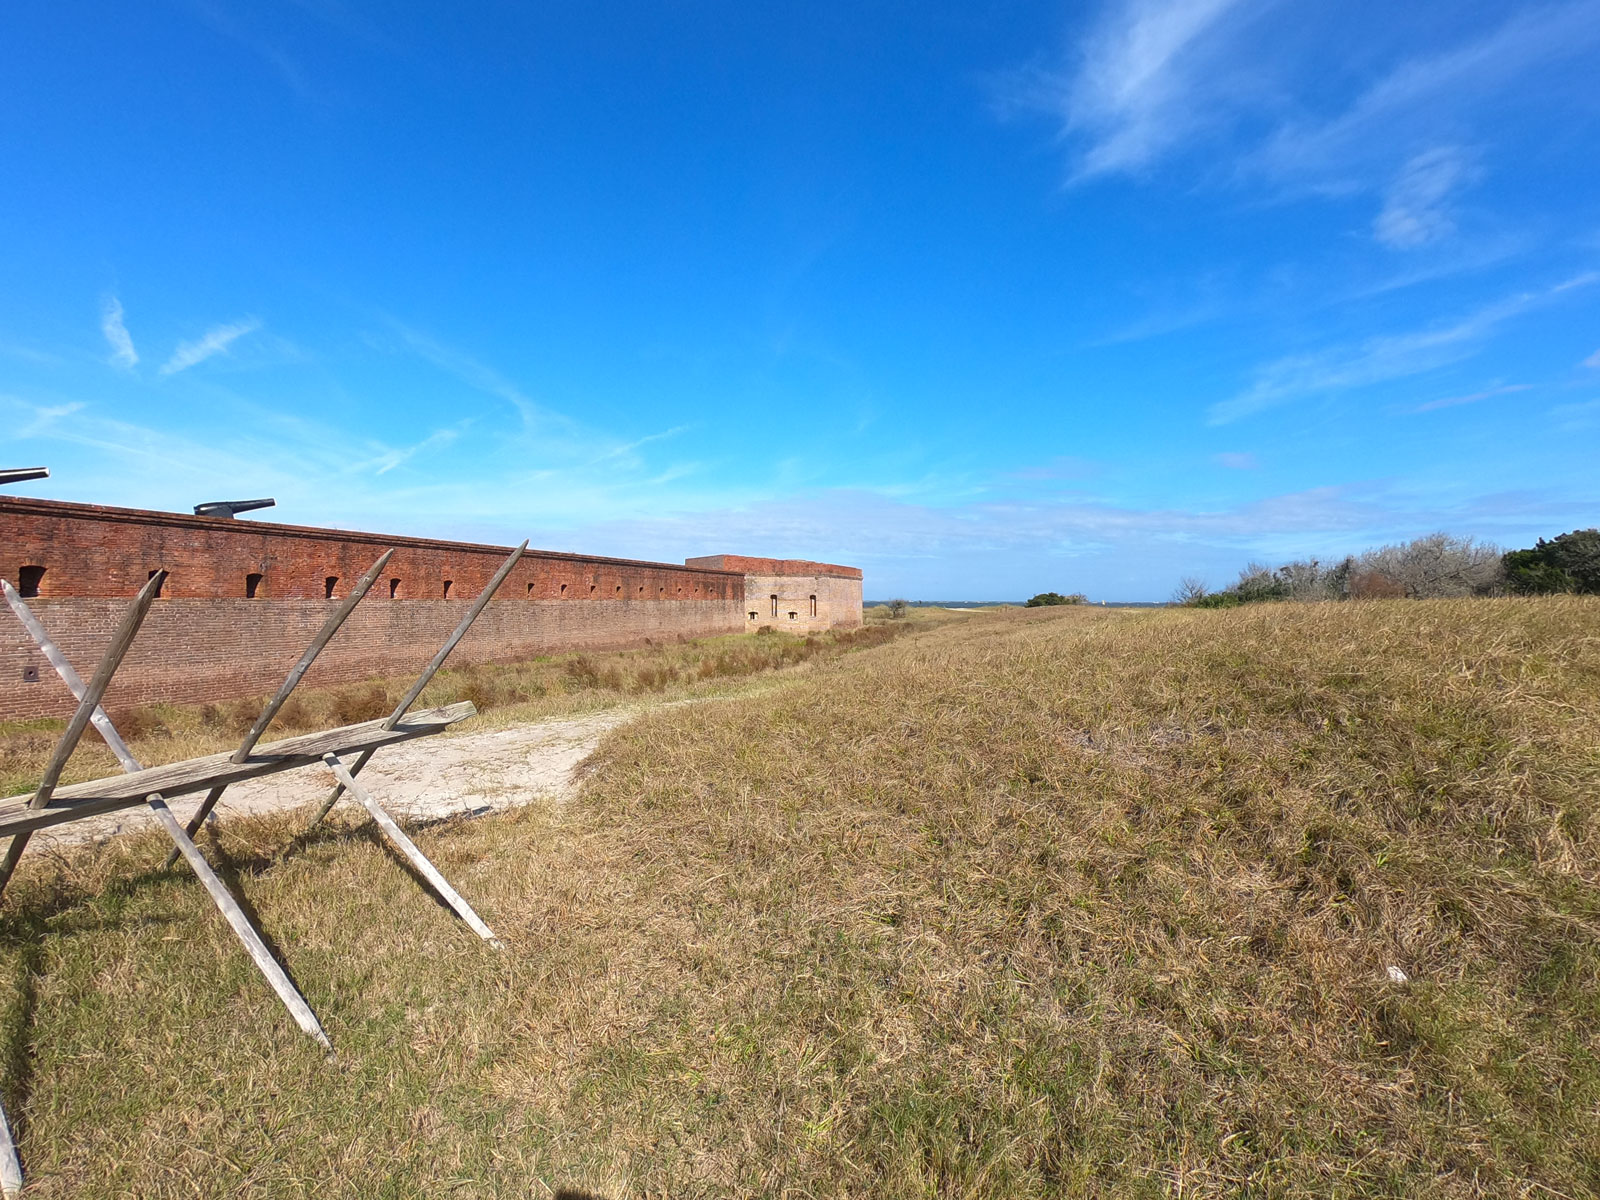 Expansive view of exterior brick walls of historic Fort Clinch